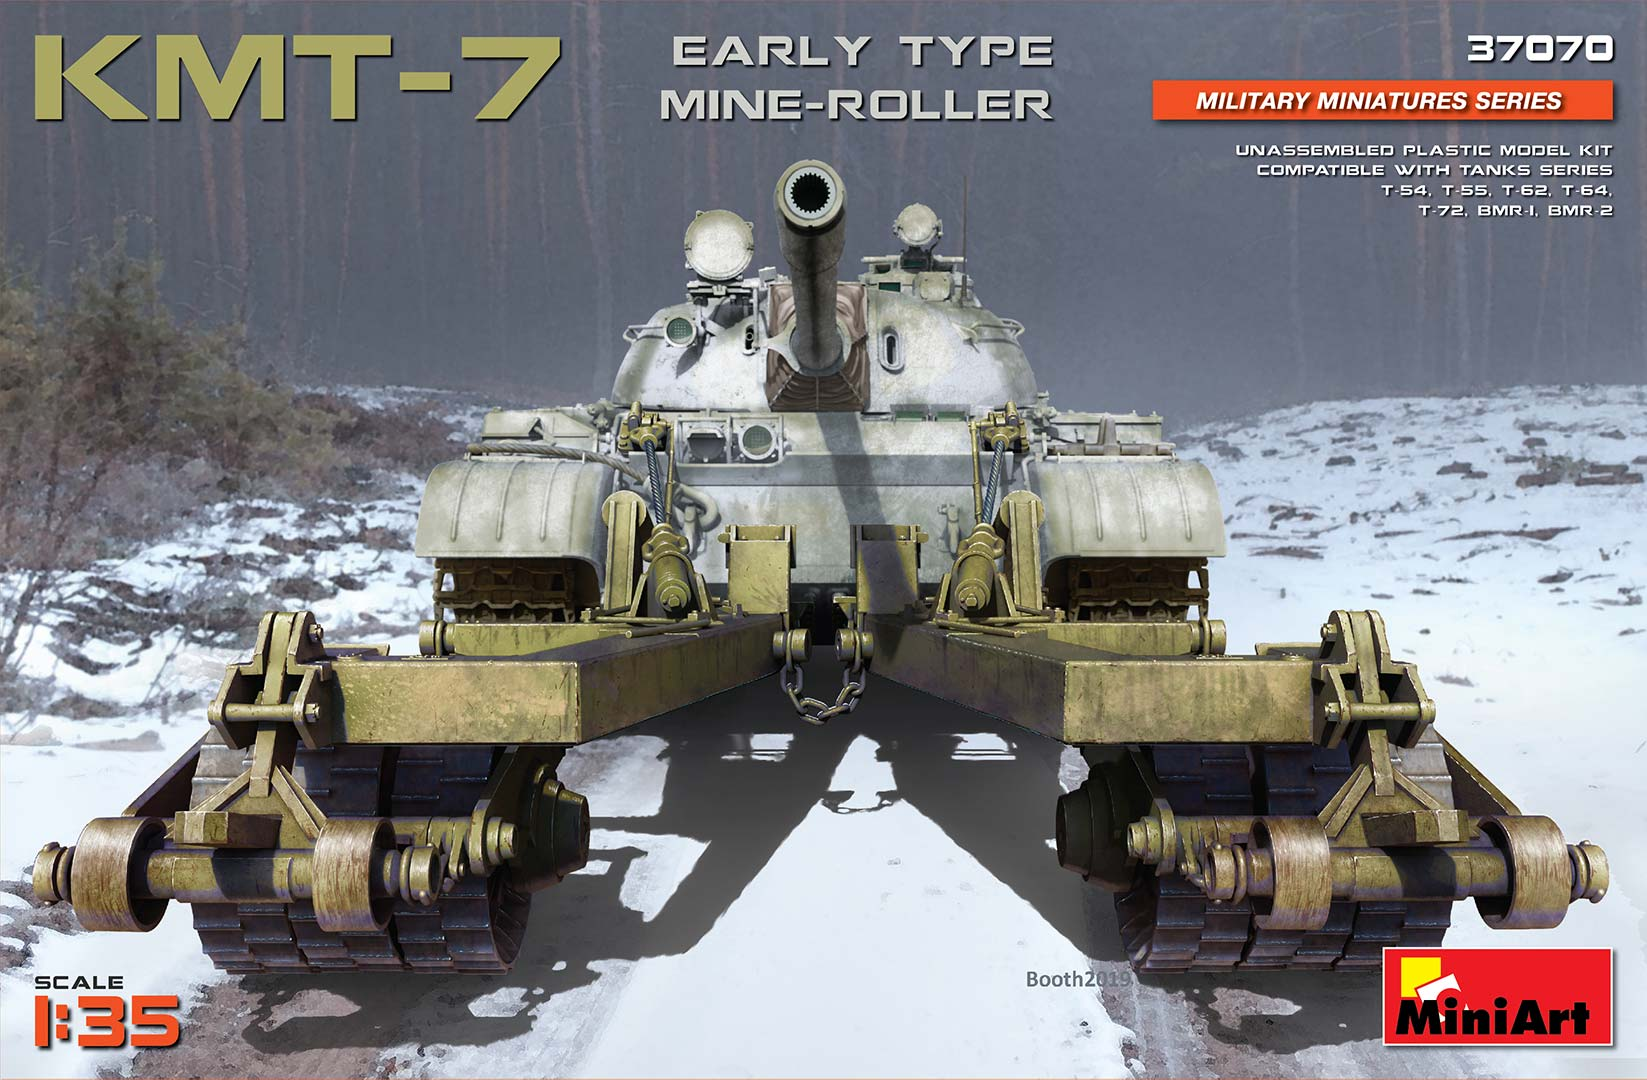 MiniArt KMT-7 Early Type Mine-Roller